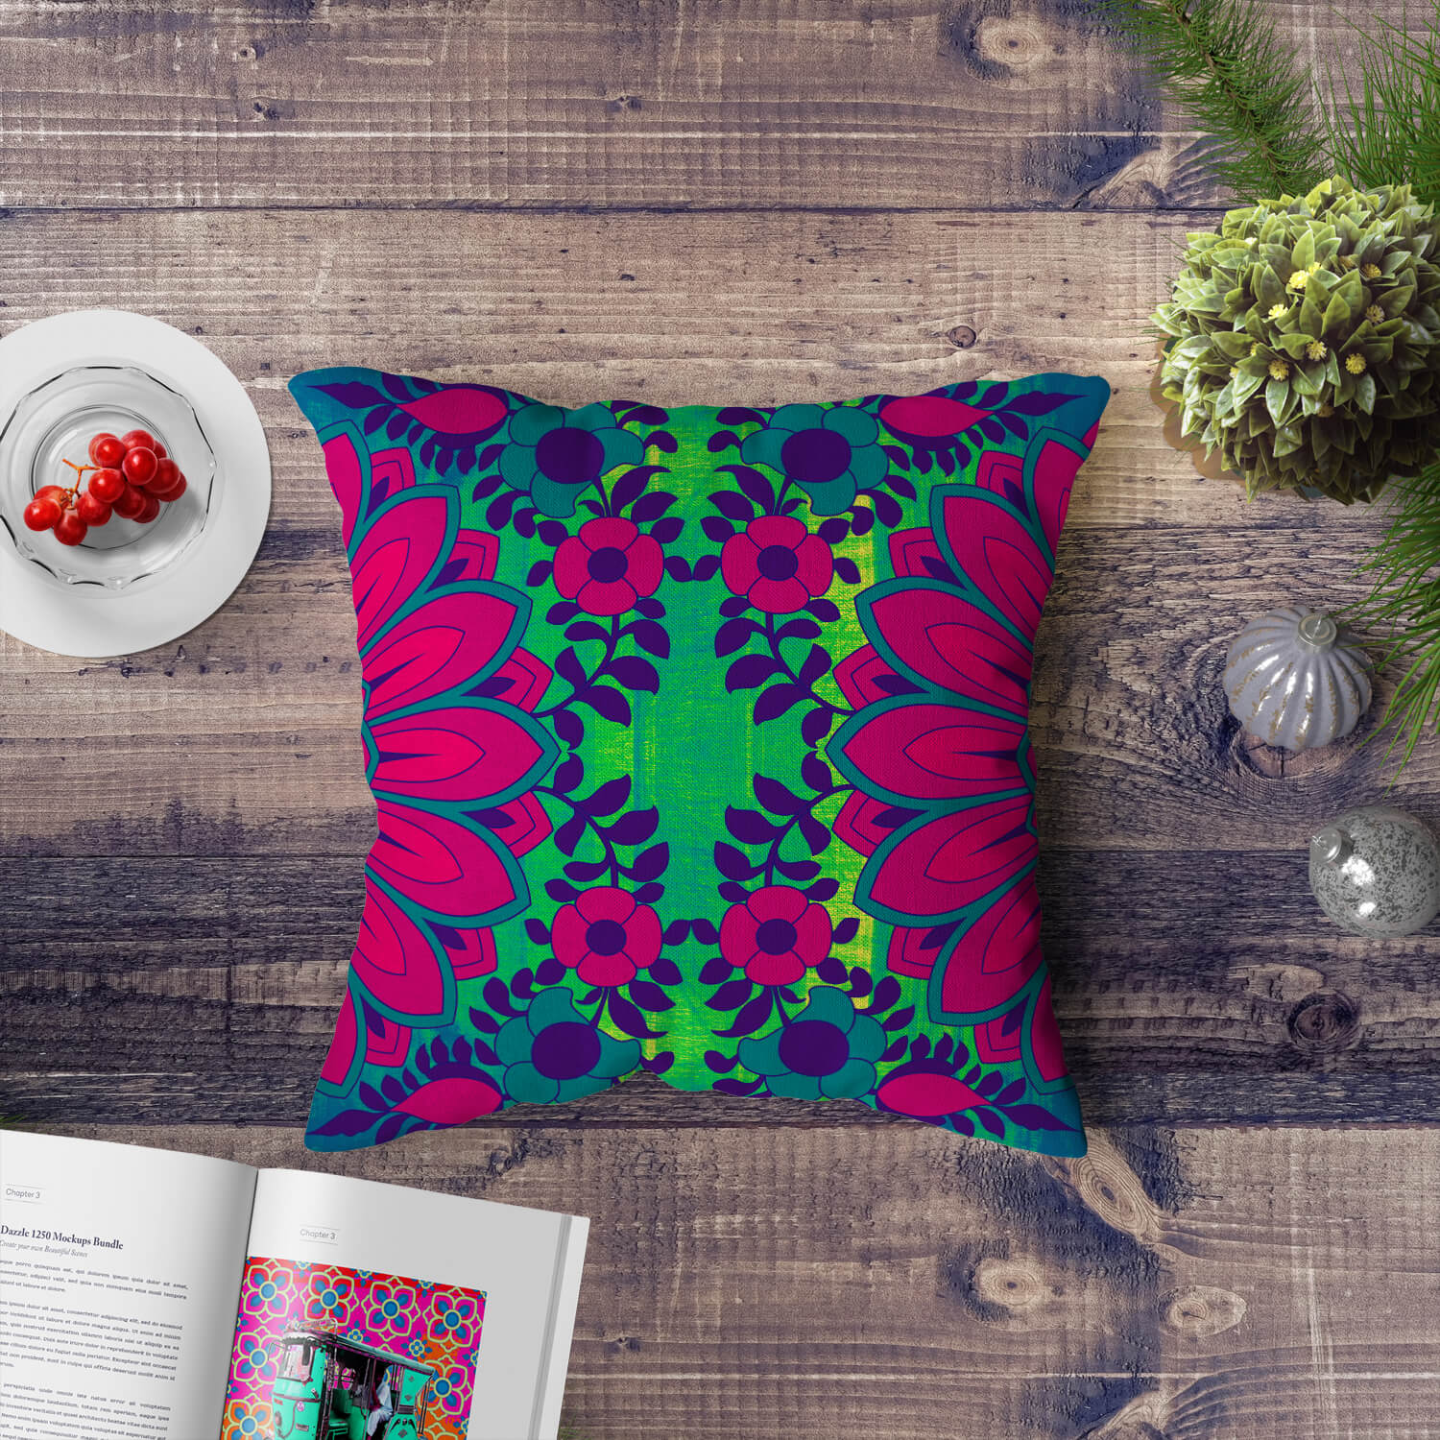 Blooming Flower Motif Cushion Cover Set of 2